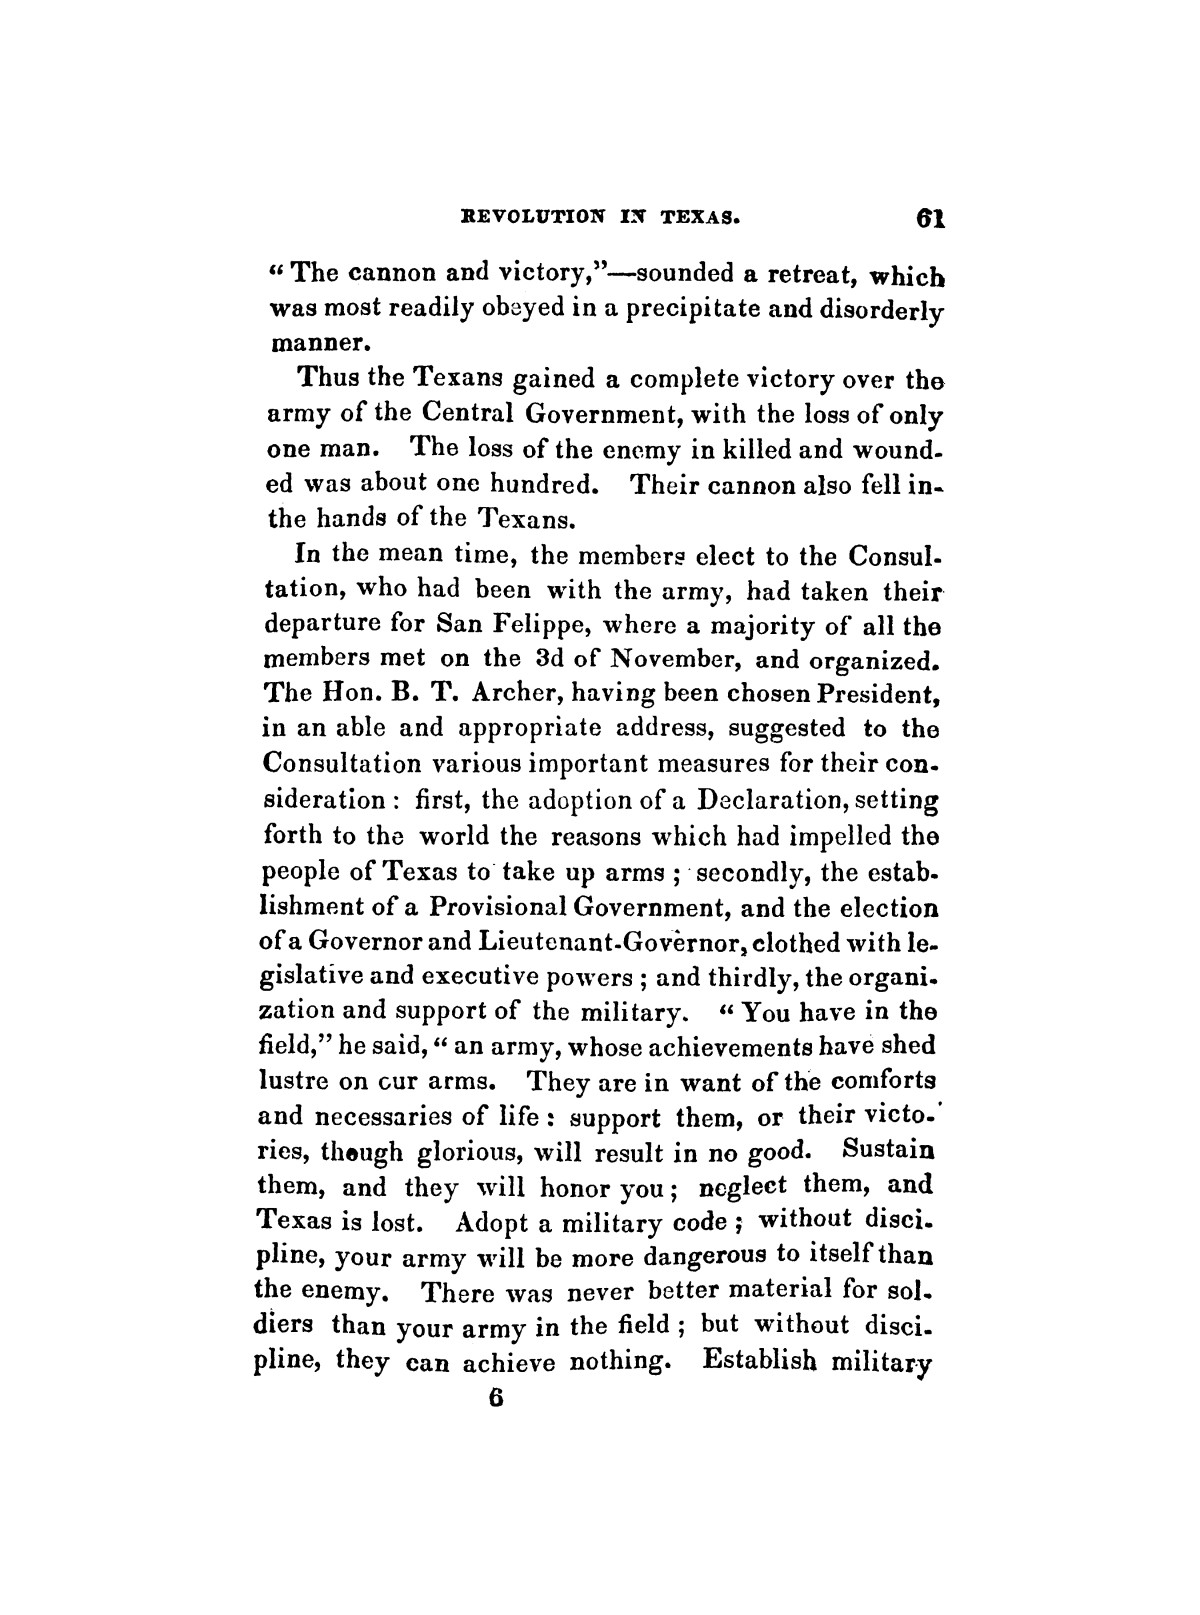 History of the revolution in Texas, particularly of the war of 1835 & '36; together with the latest geographical, topographical, and statistical accounts of the country, from the most authentic sources. Also, an appendix. By the Rev. C. Newell.                                                                                                      [Sequence #]: 73 of 227